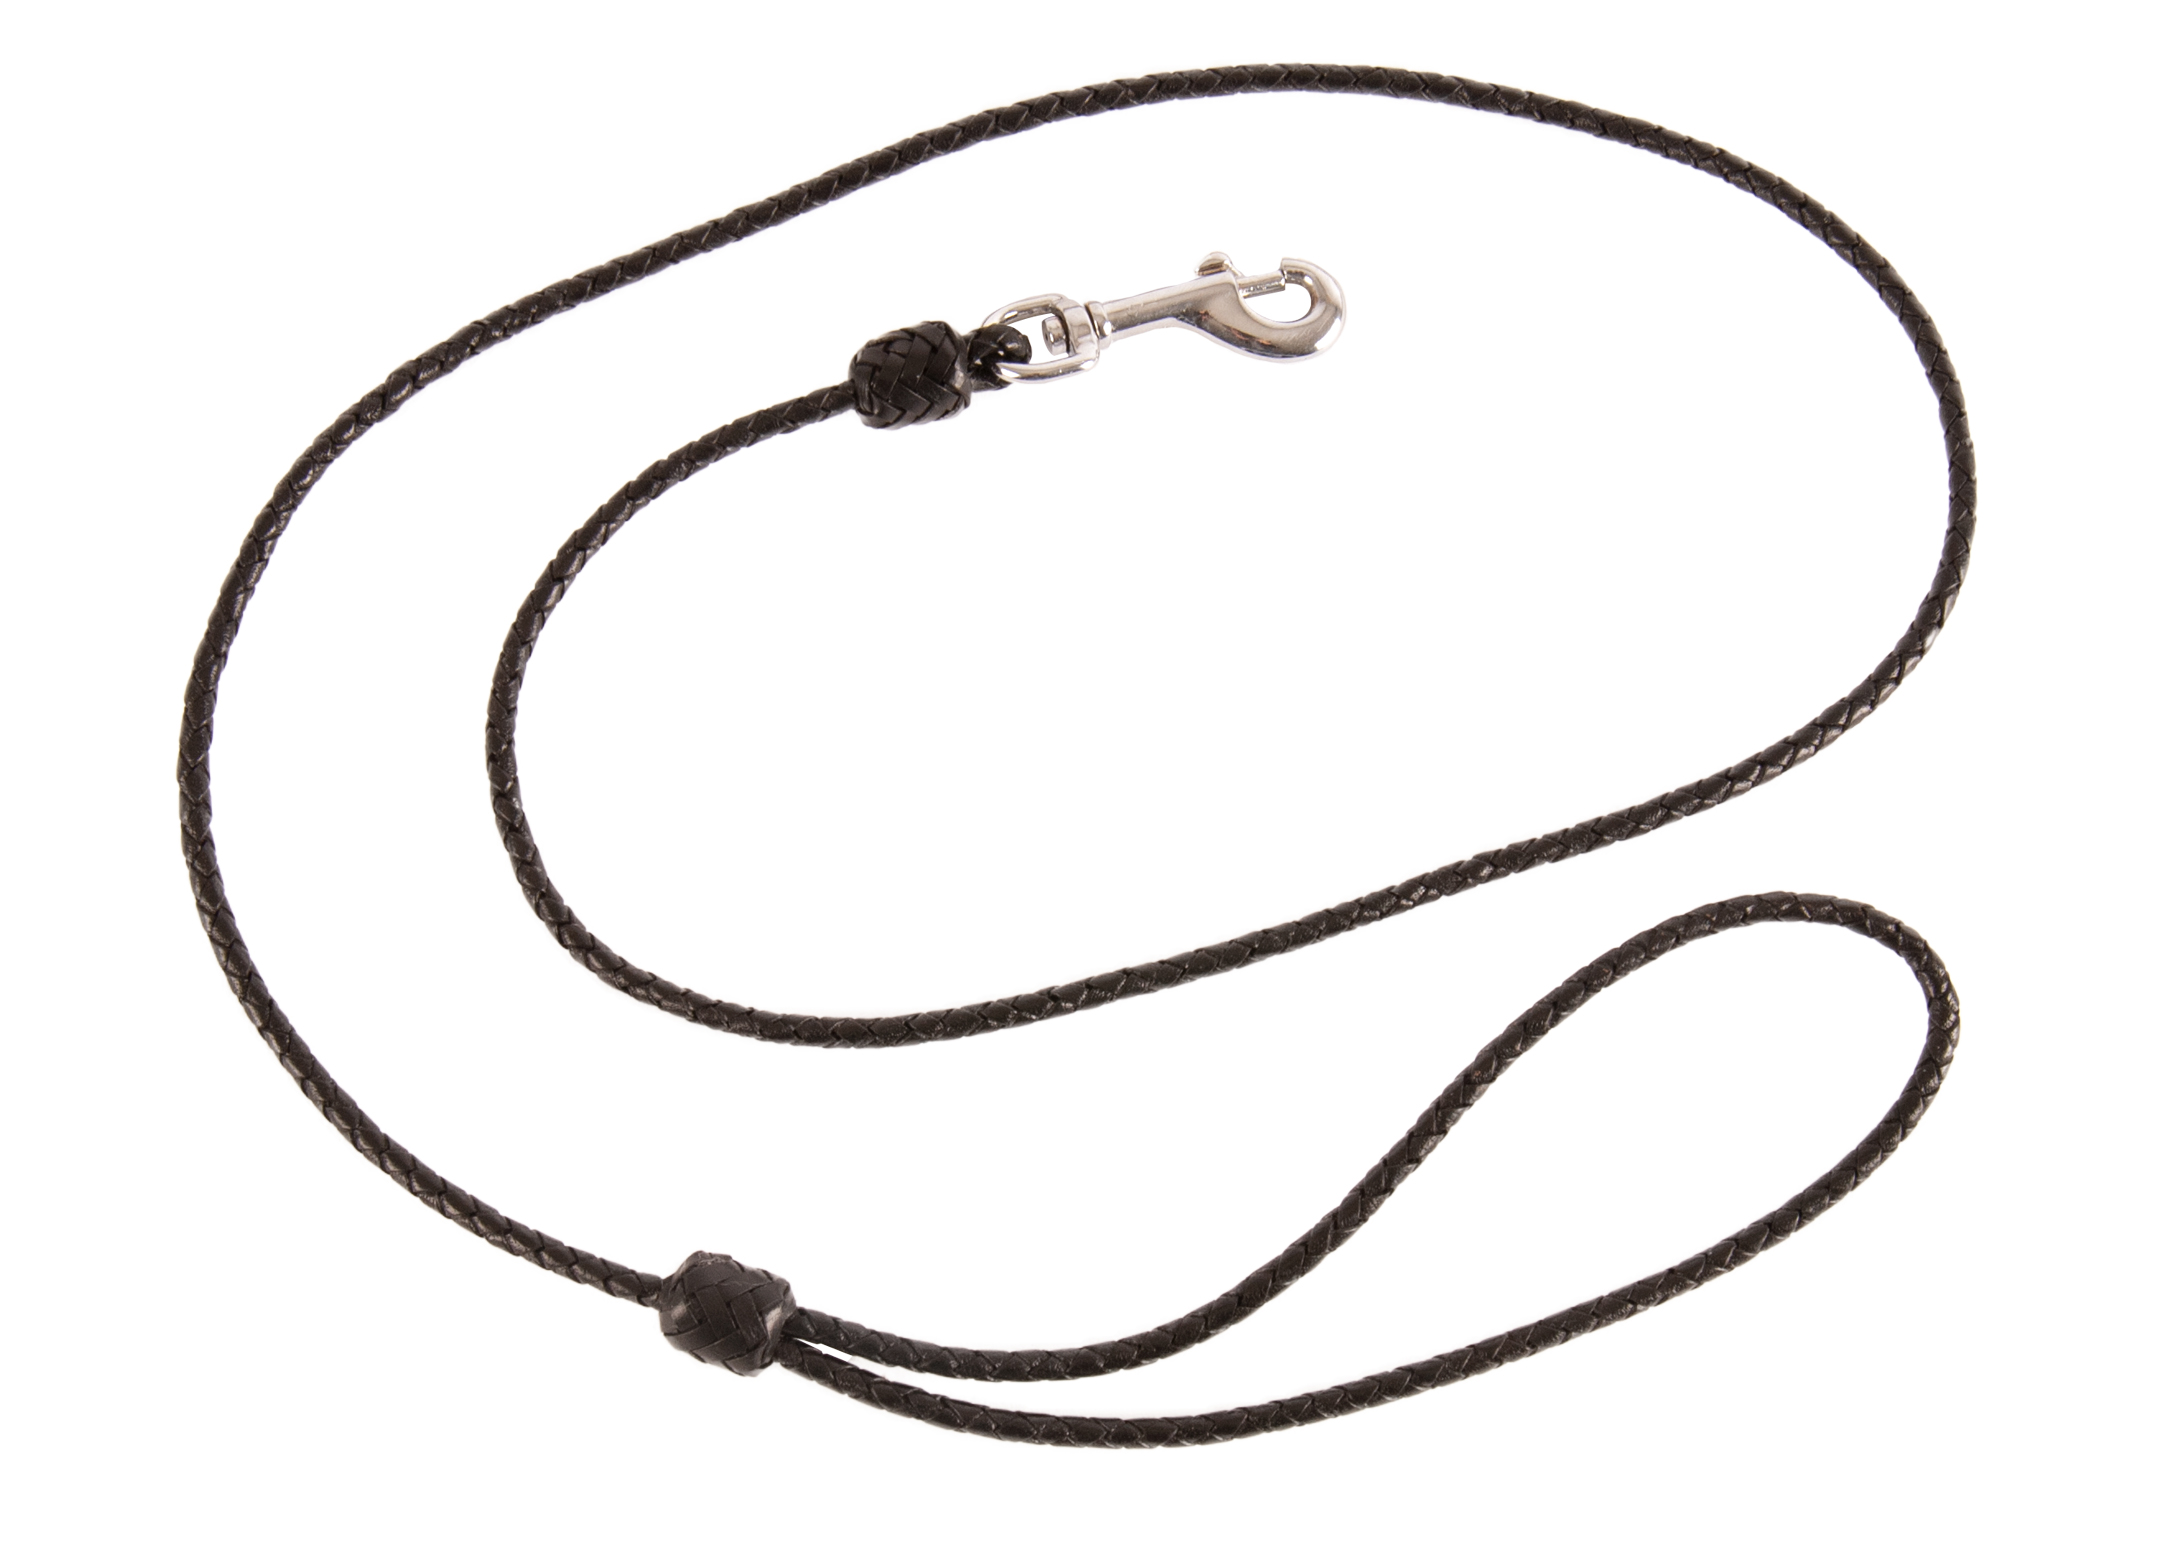 Dapper Dogs Leather Buffalo Lead Round Plaited Black 4mmx100cm